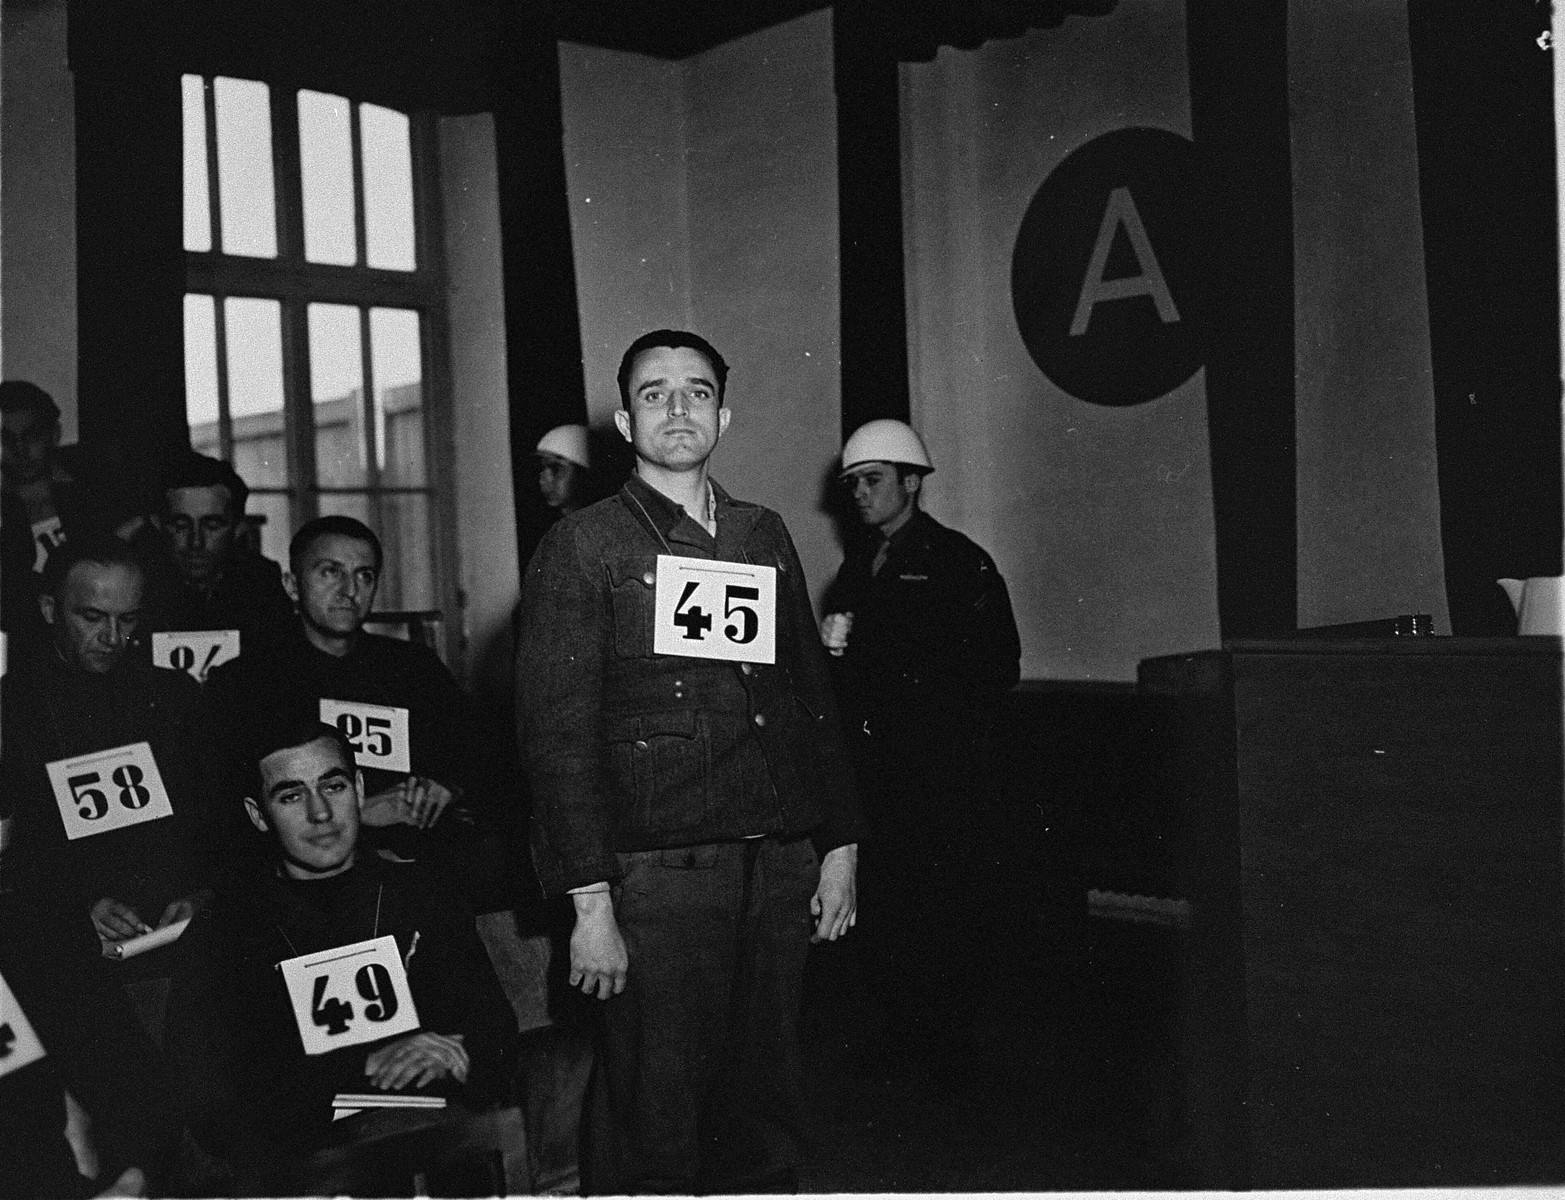 Former SS-Unterscharfuehrer Josef Niedermayer, a defendant at the trial of 61 former camp personnel and prisoners from Mauthausen, stands in his place in the defendants' dock.    Niedermayer was convicted and sentenced to death on May 13, 1946.